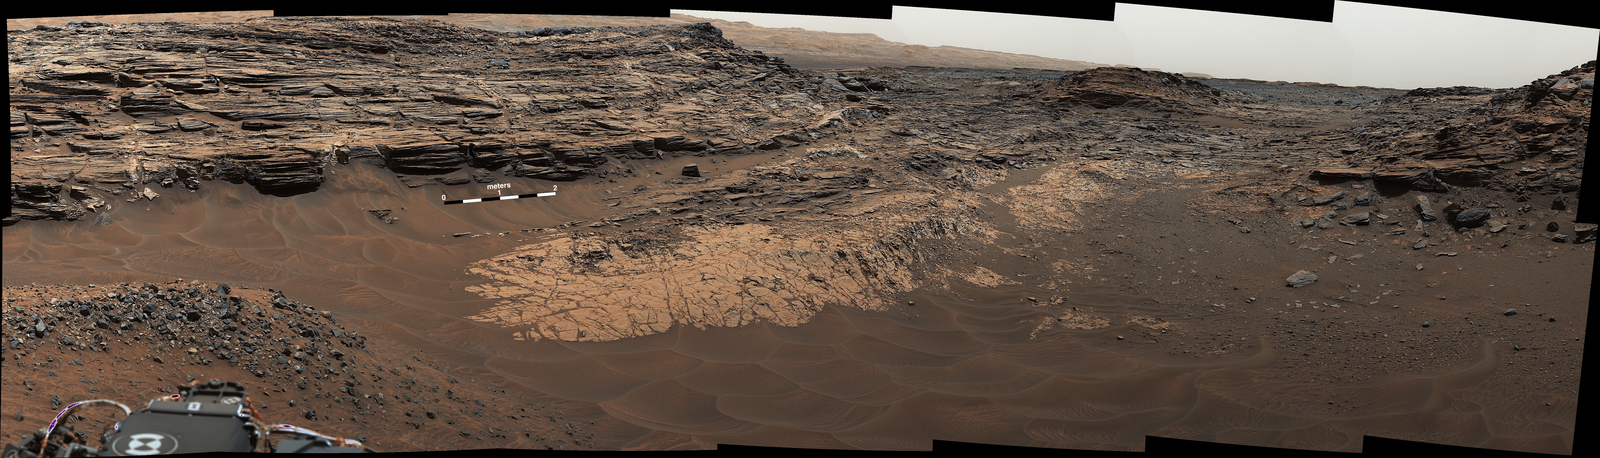 "This May 22, 2015, view from the Mast Camera (Mastcam) in NASA's Curiosity Mars rover shows the ""Marias Pass"" area where a lower and older geological unit of mudstone -- the pale zone in the center of the image -- lies in contact with an overlying geological unit of sandstone."